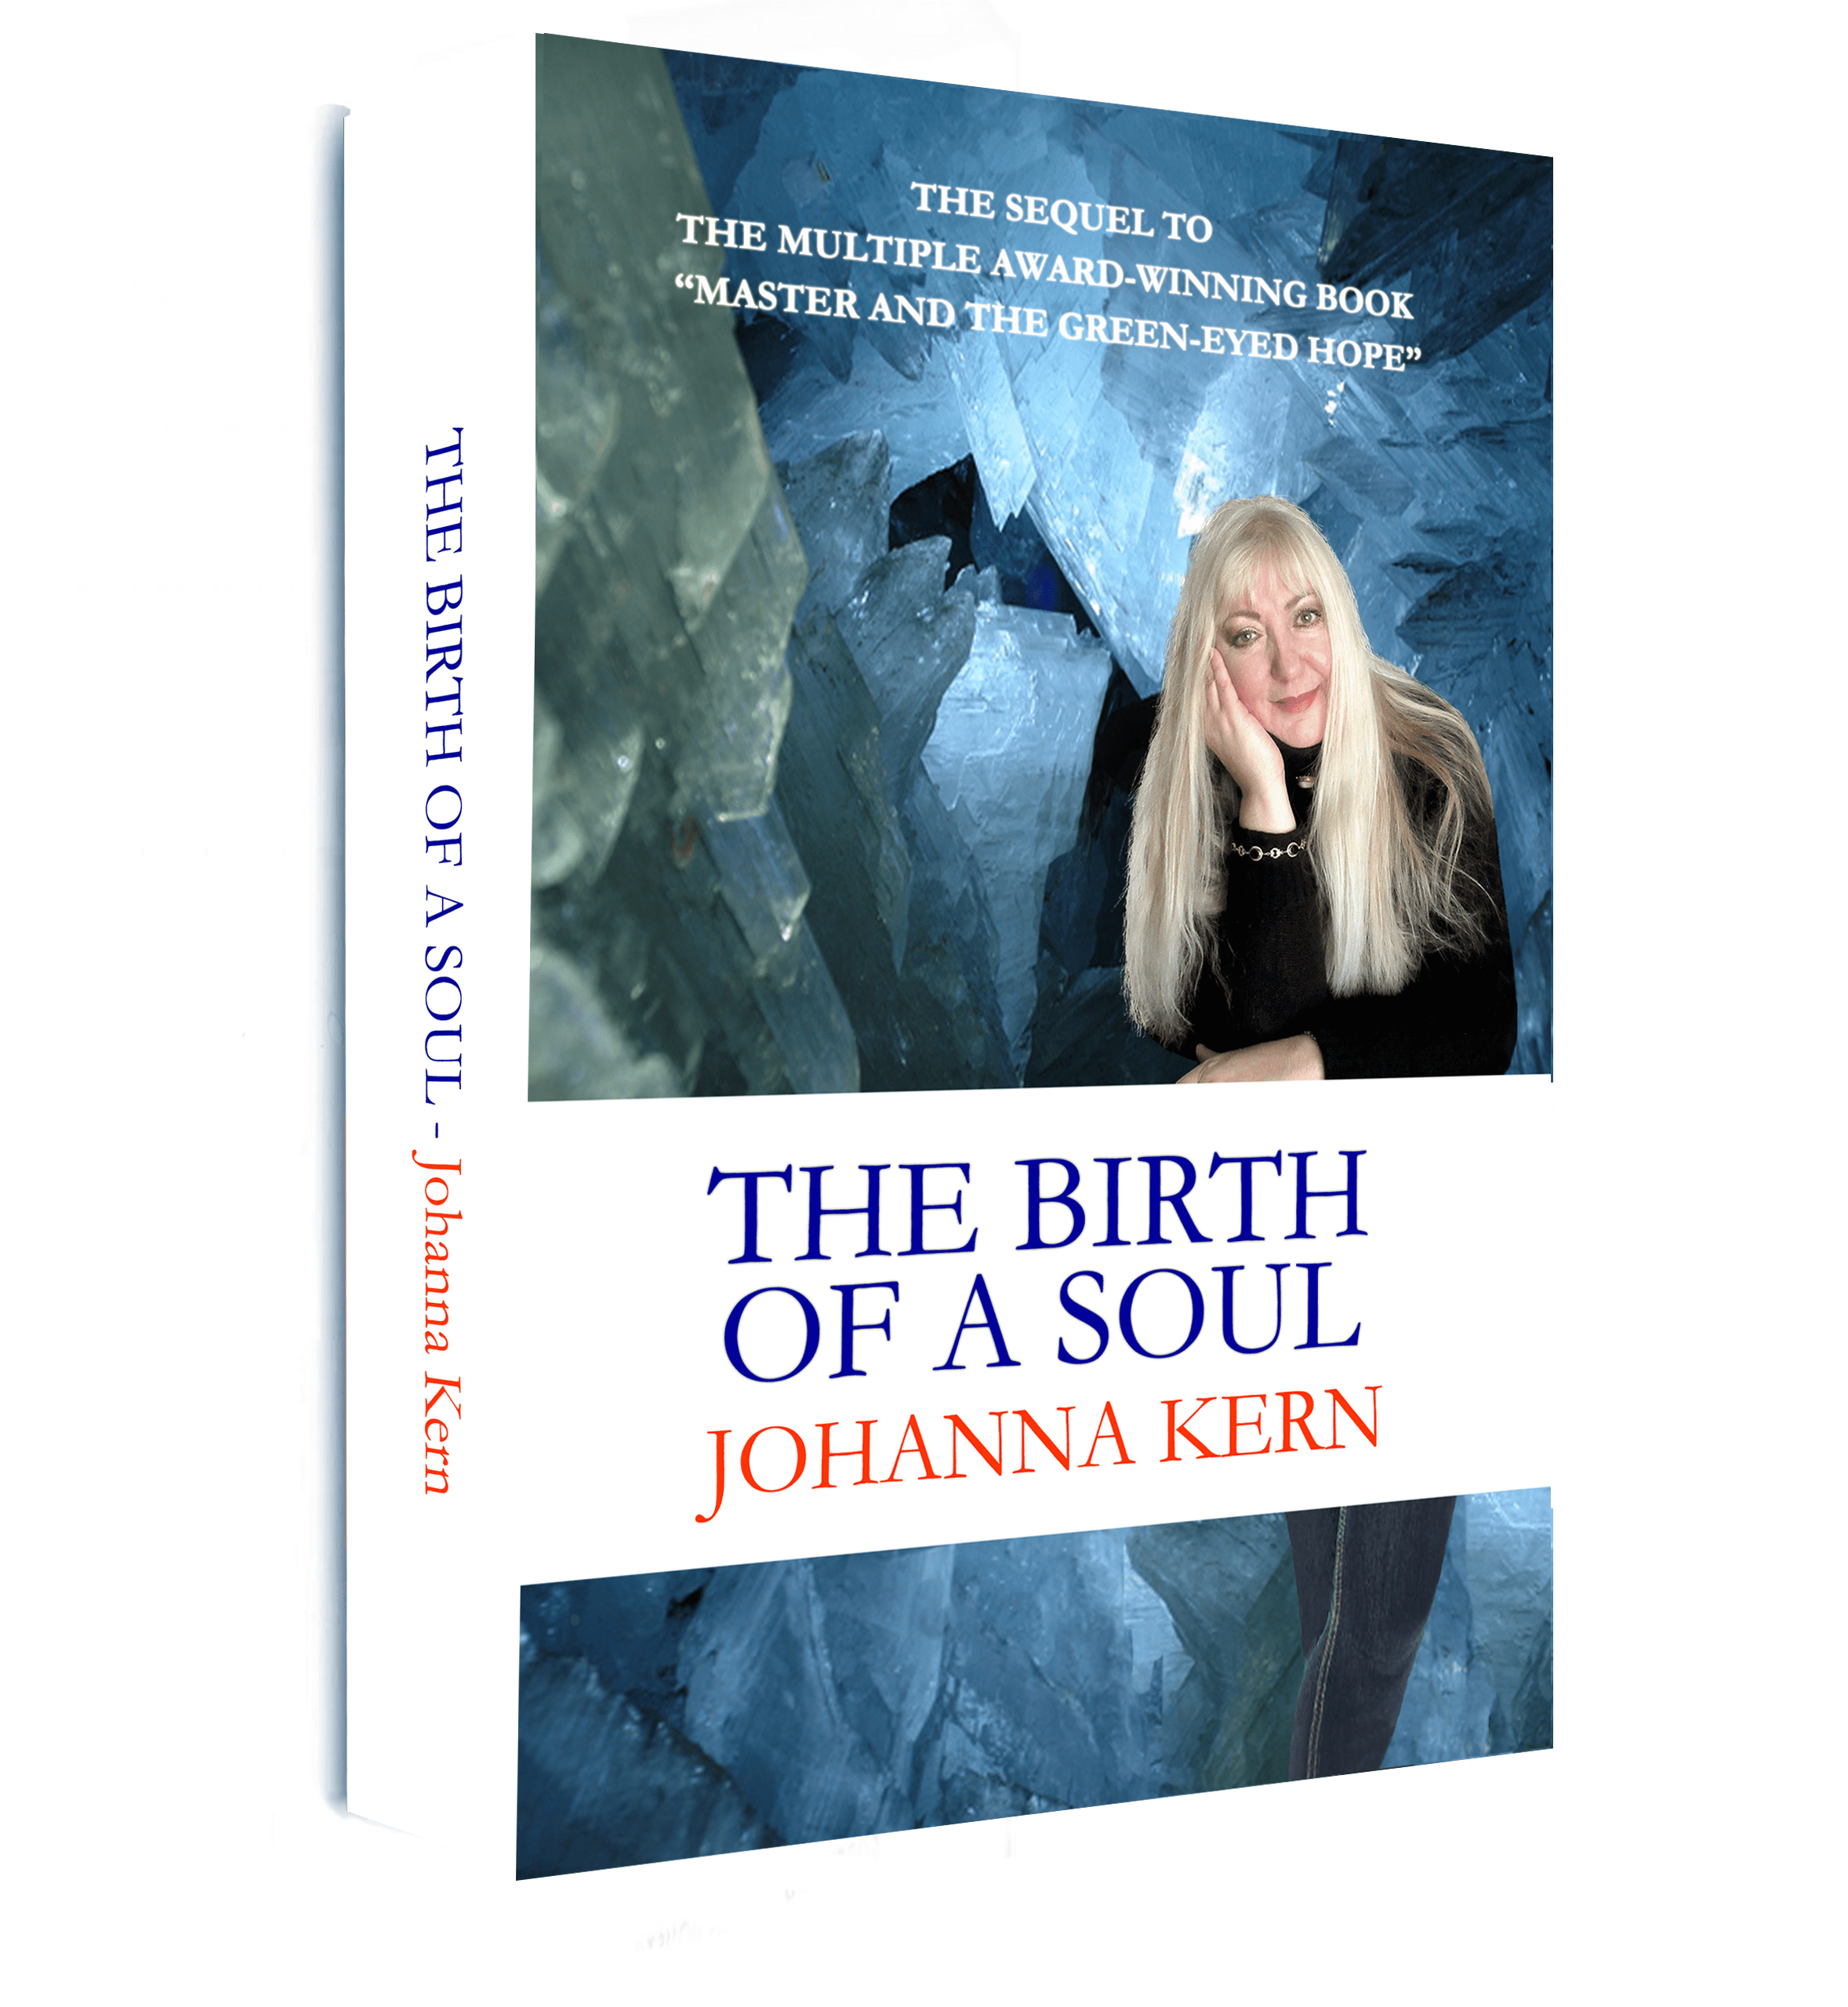 The Birth of a Soul by Johanna Kern